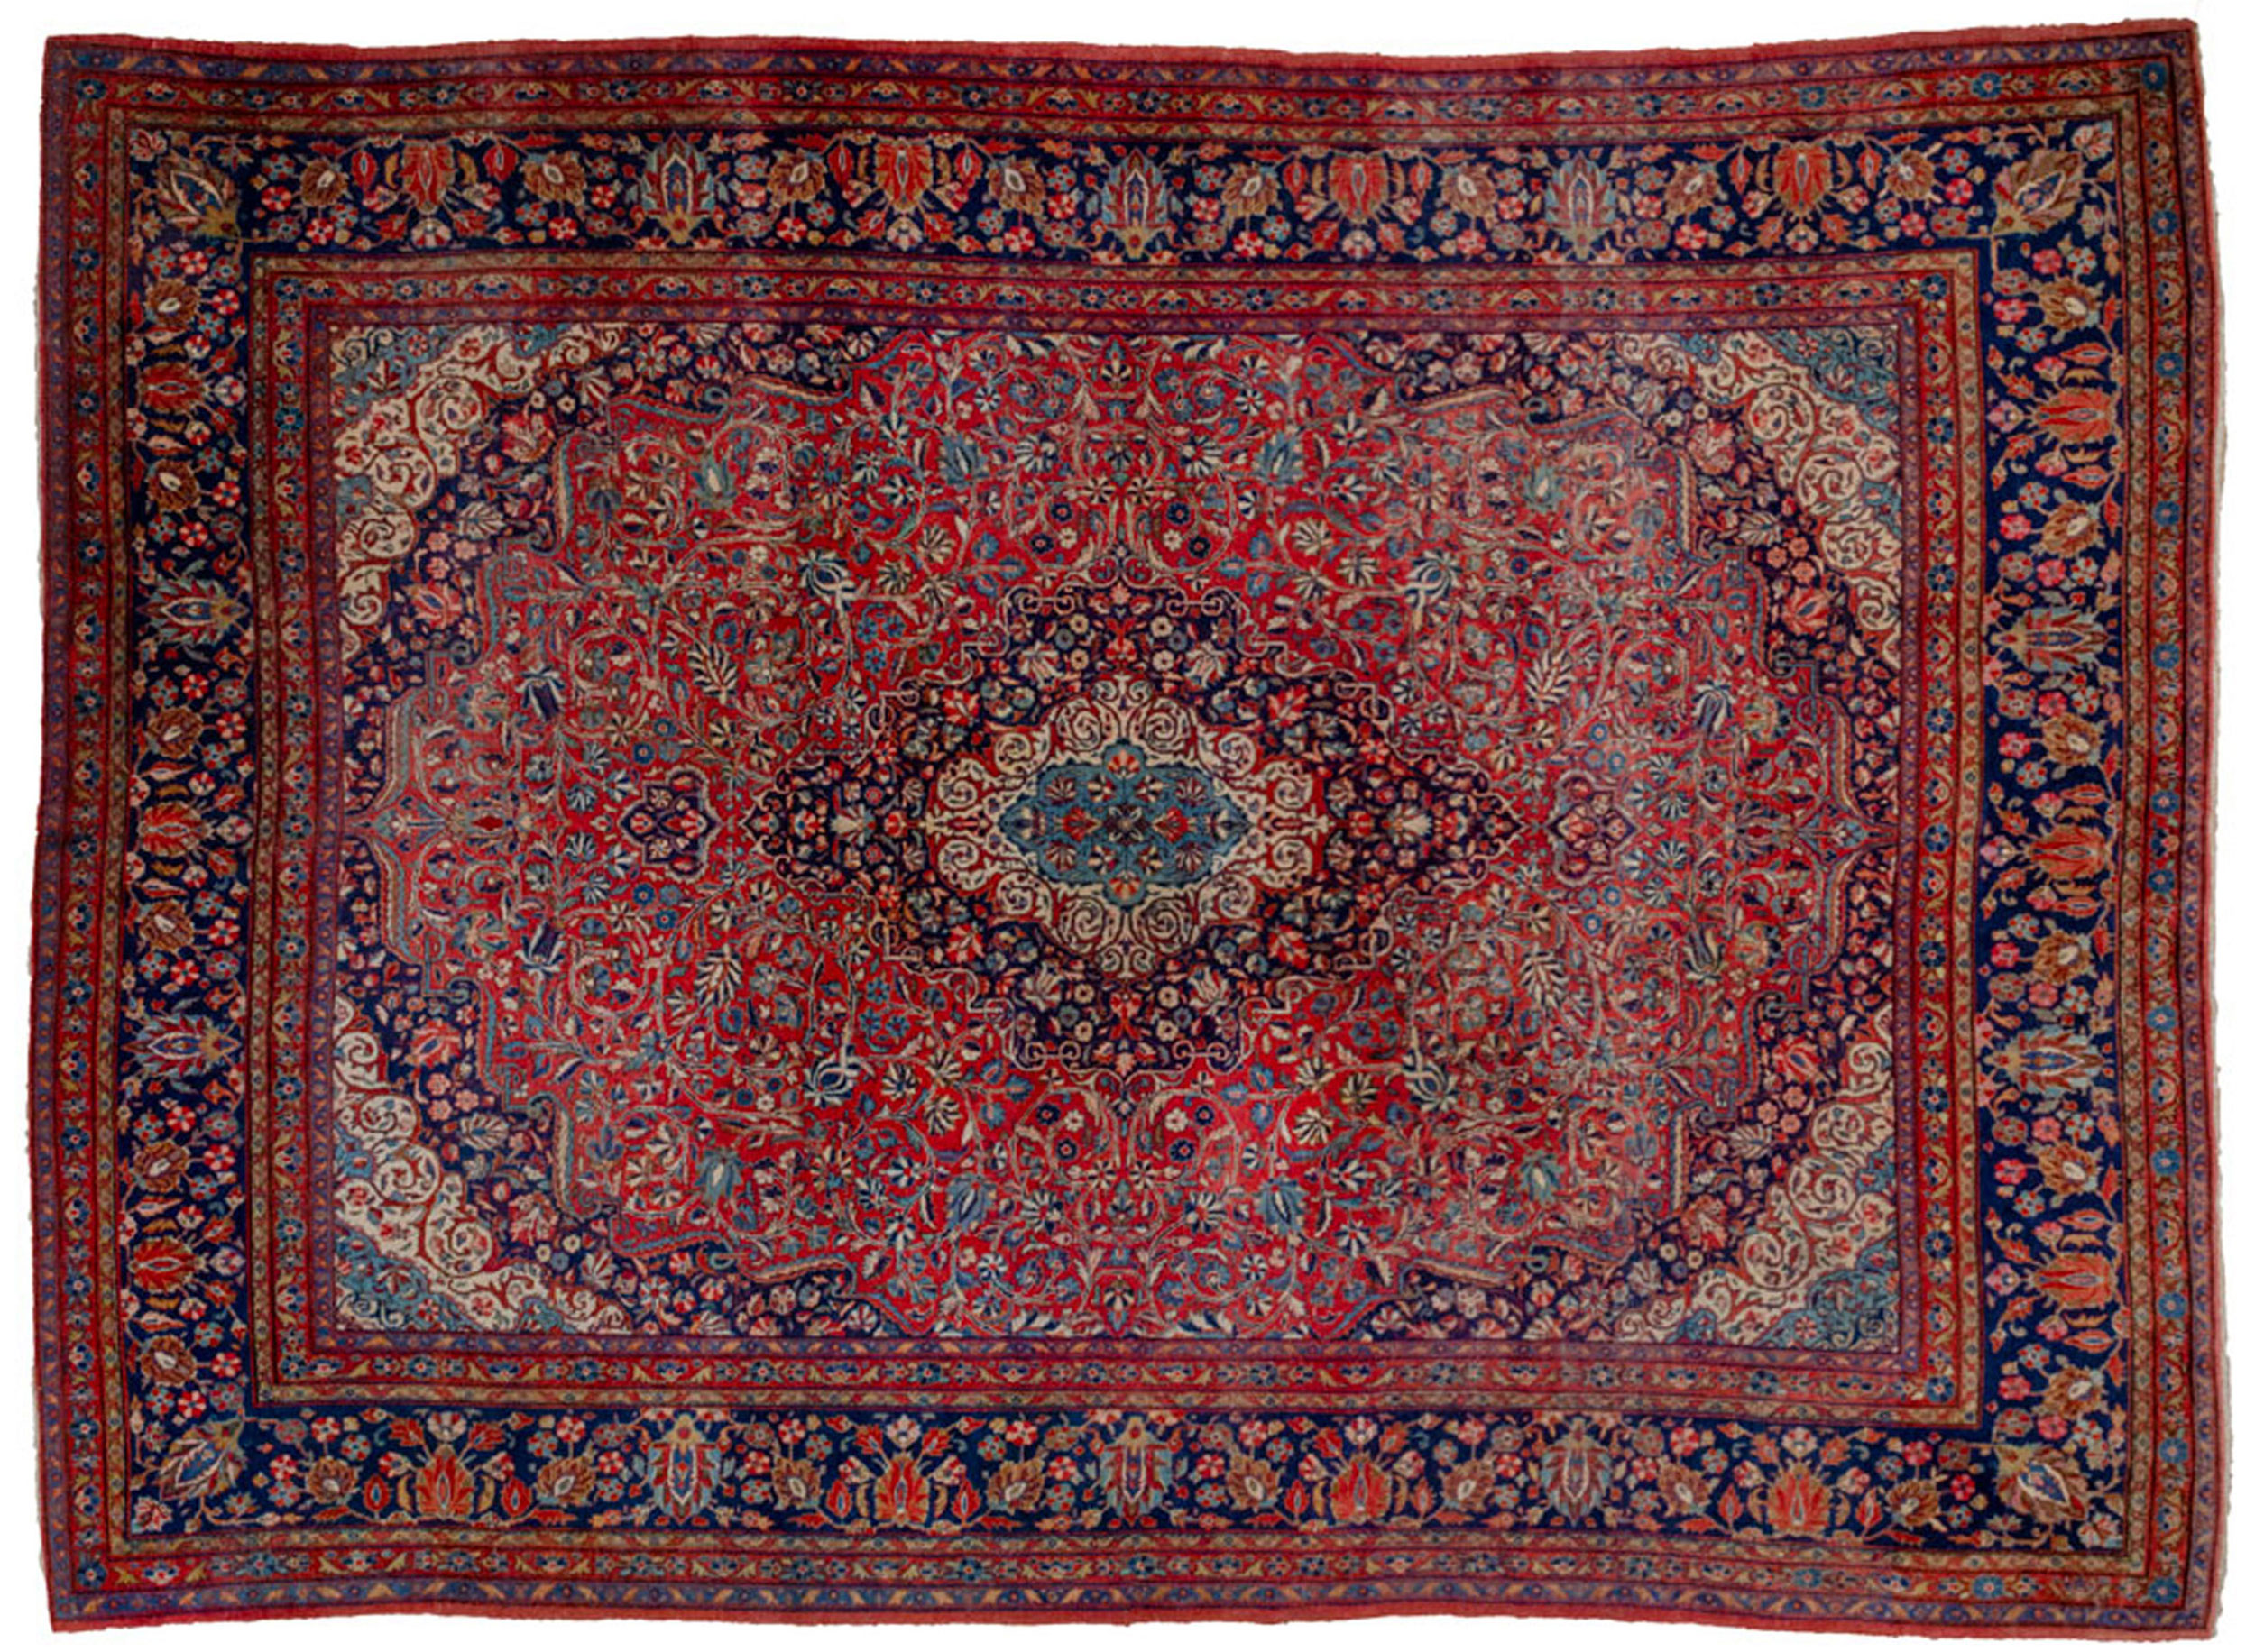 Antique Kashan Carpet 345x240cm